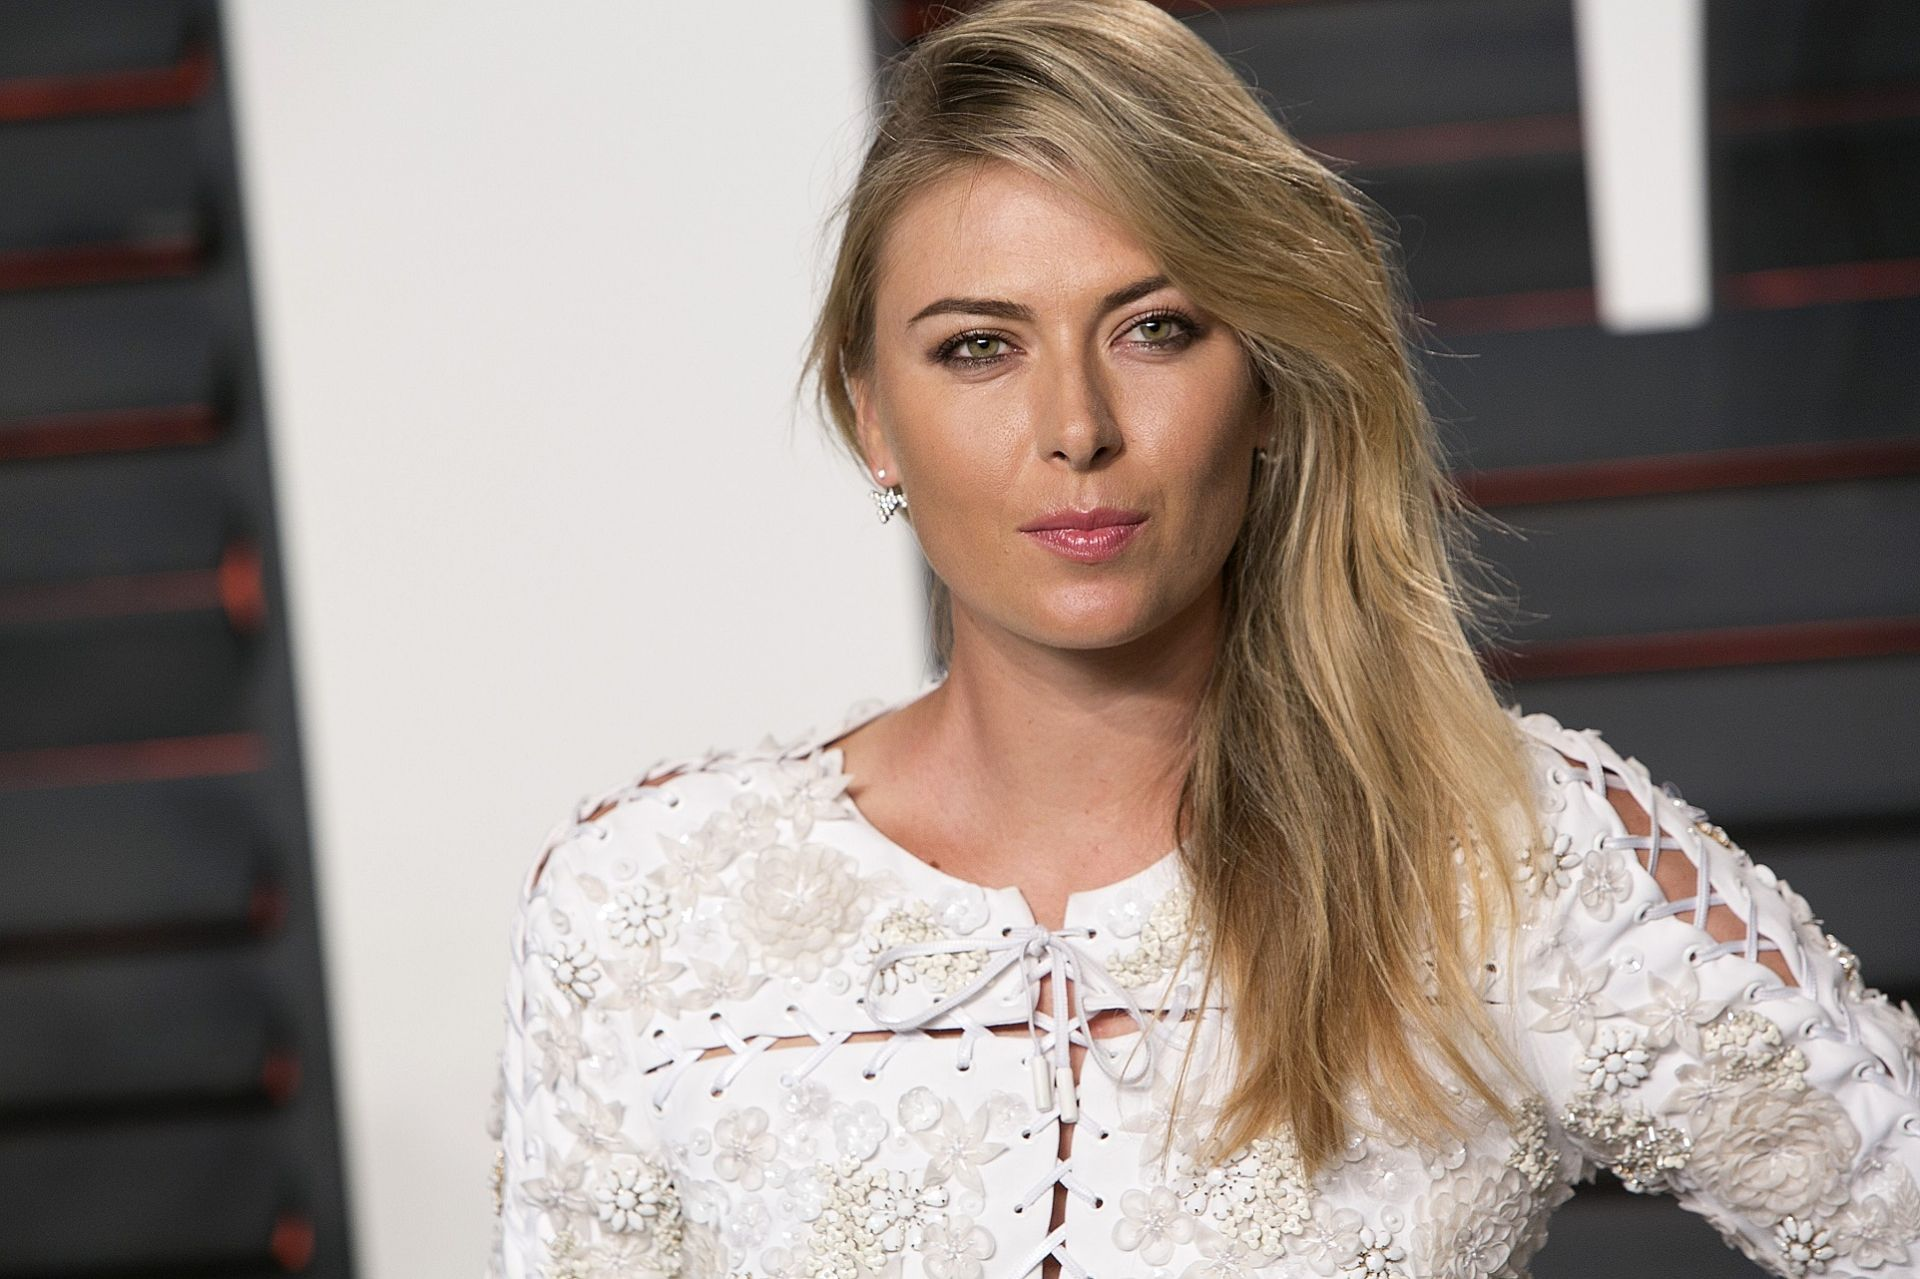 Russian tennis player Maria Sharapova poses as she arrives to the 2016 Vanity Fair Oscar Party in Beverly Hills, California on February 28, 2016. / AFP PHOTO / ADRIAN SANCHEZ-GONZALEZ